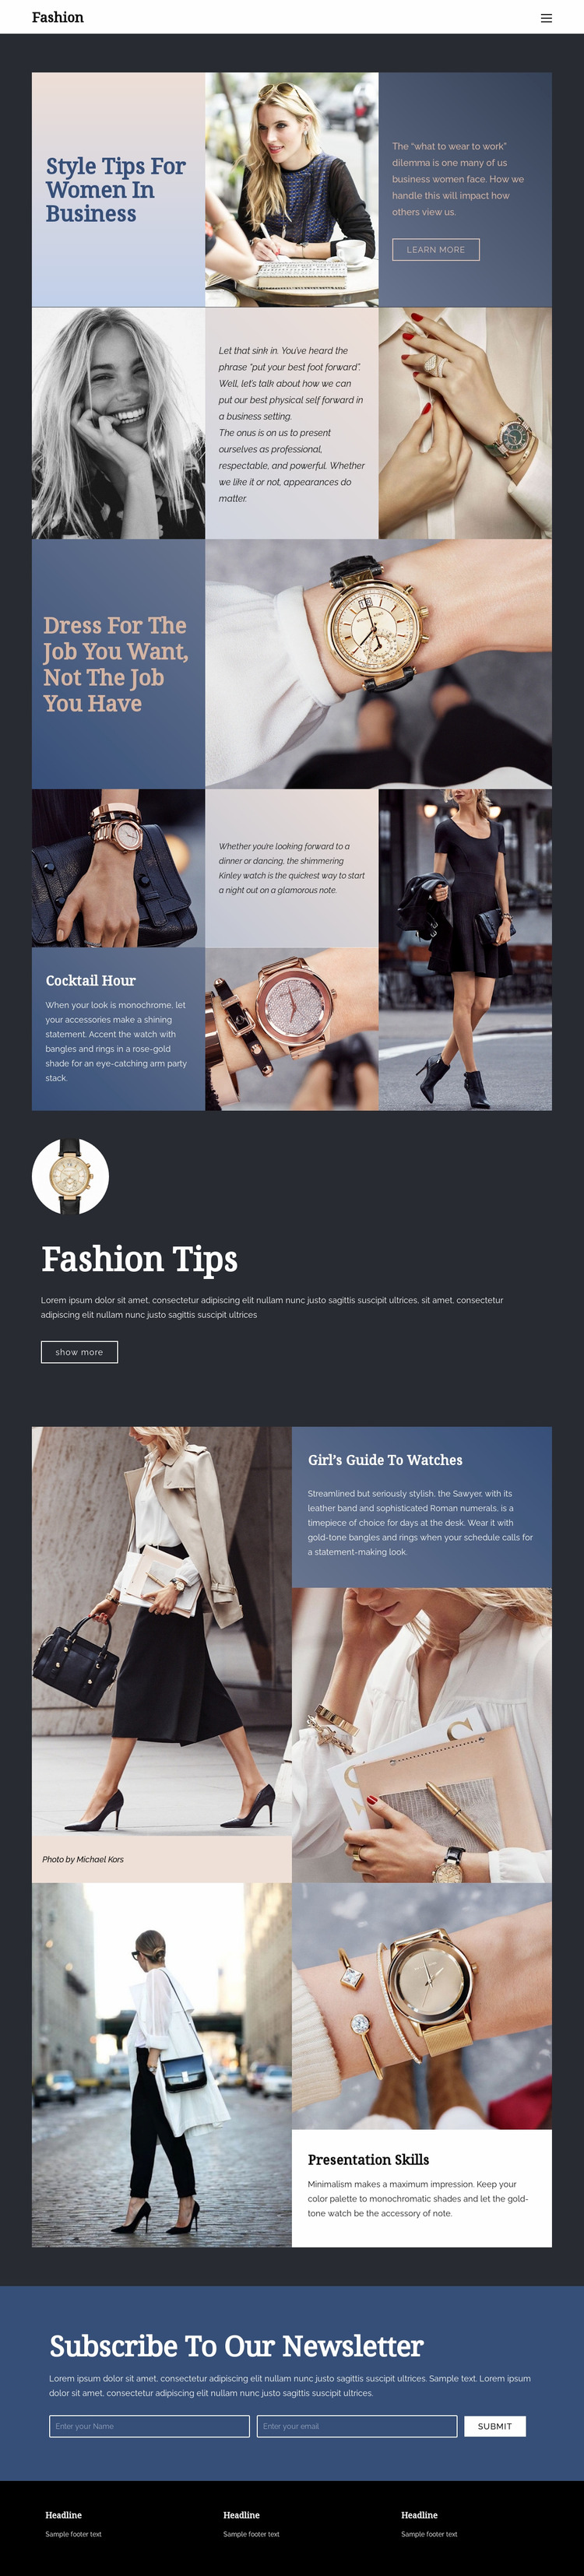 Tips to succeed in fashion WordPress Website Builder